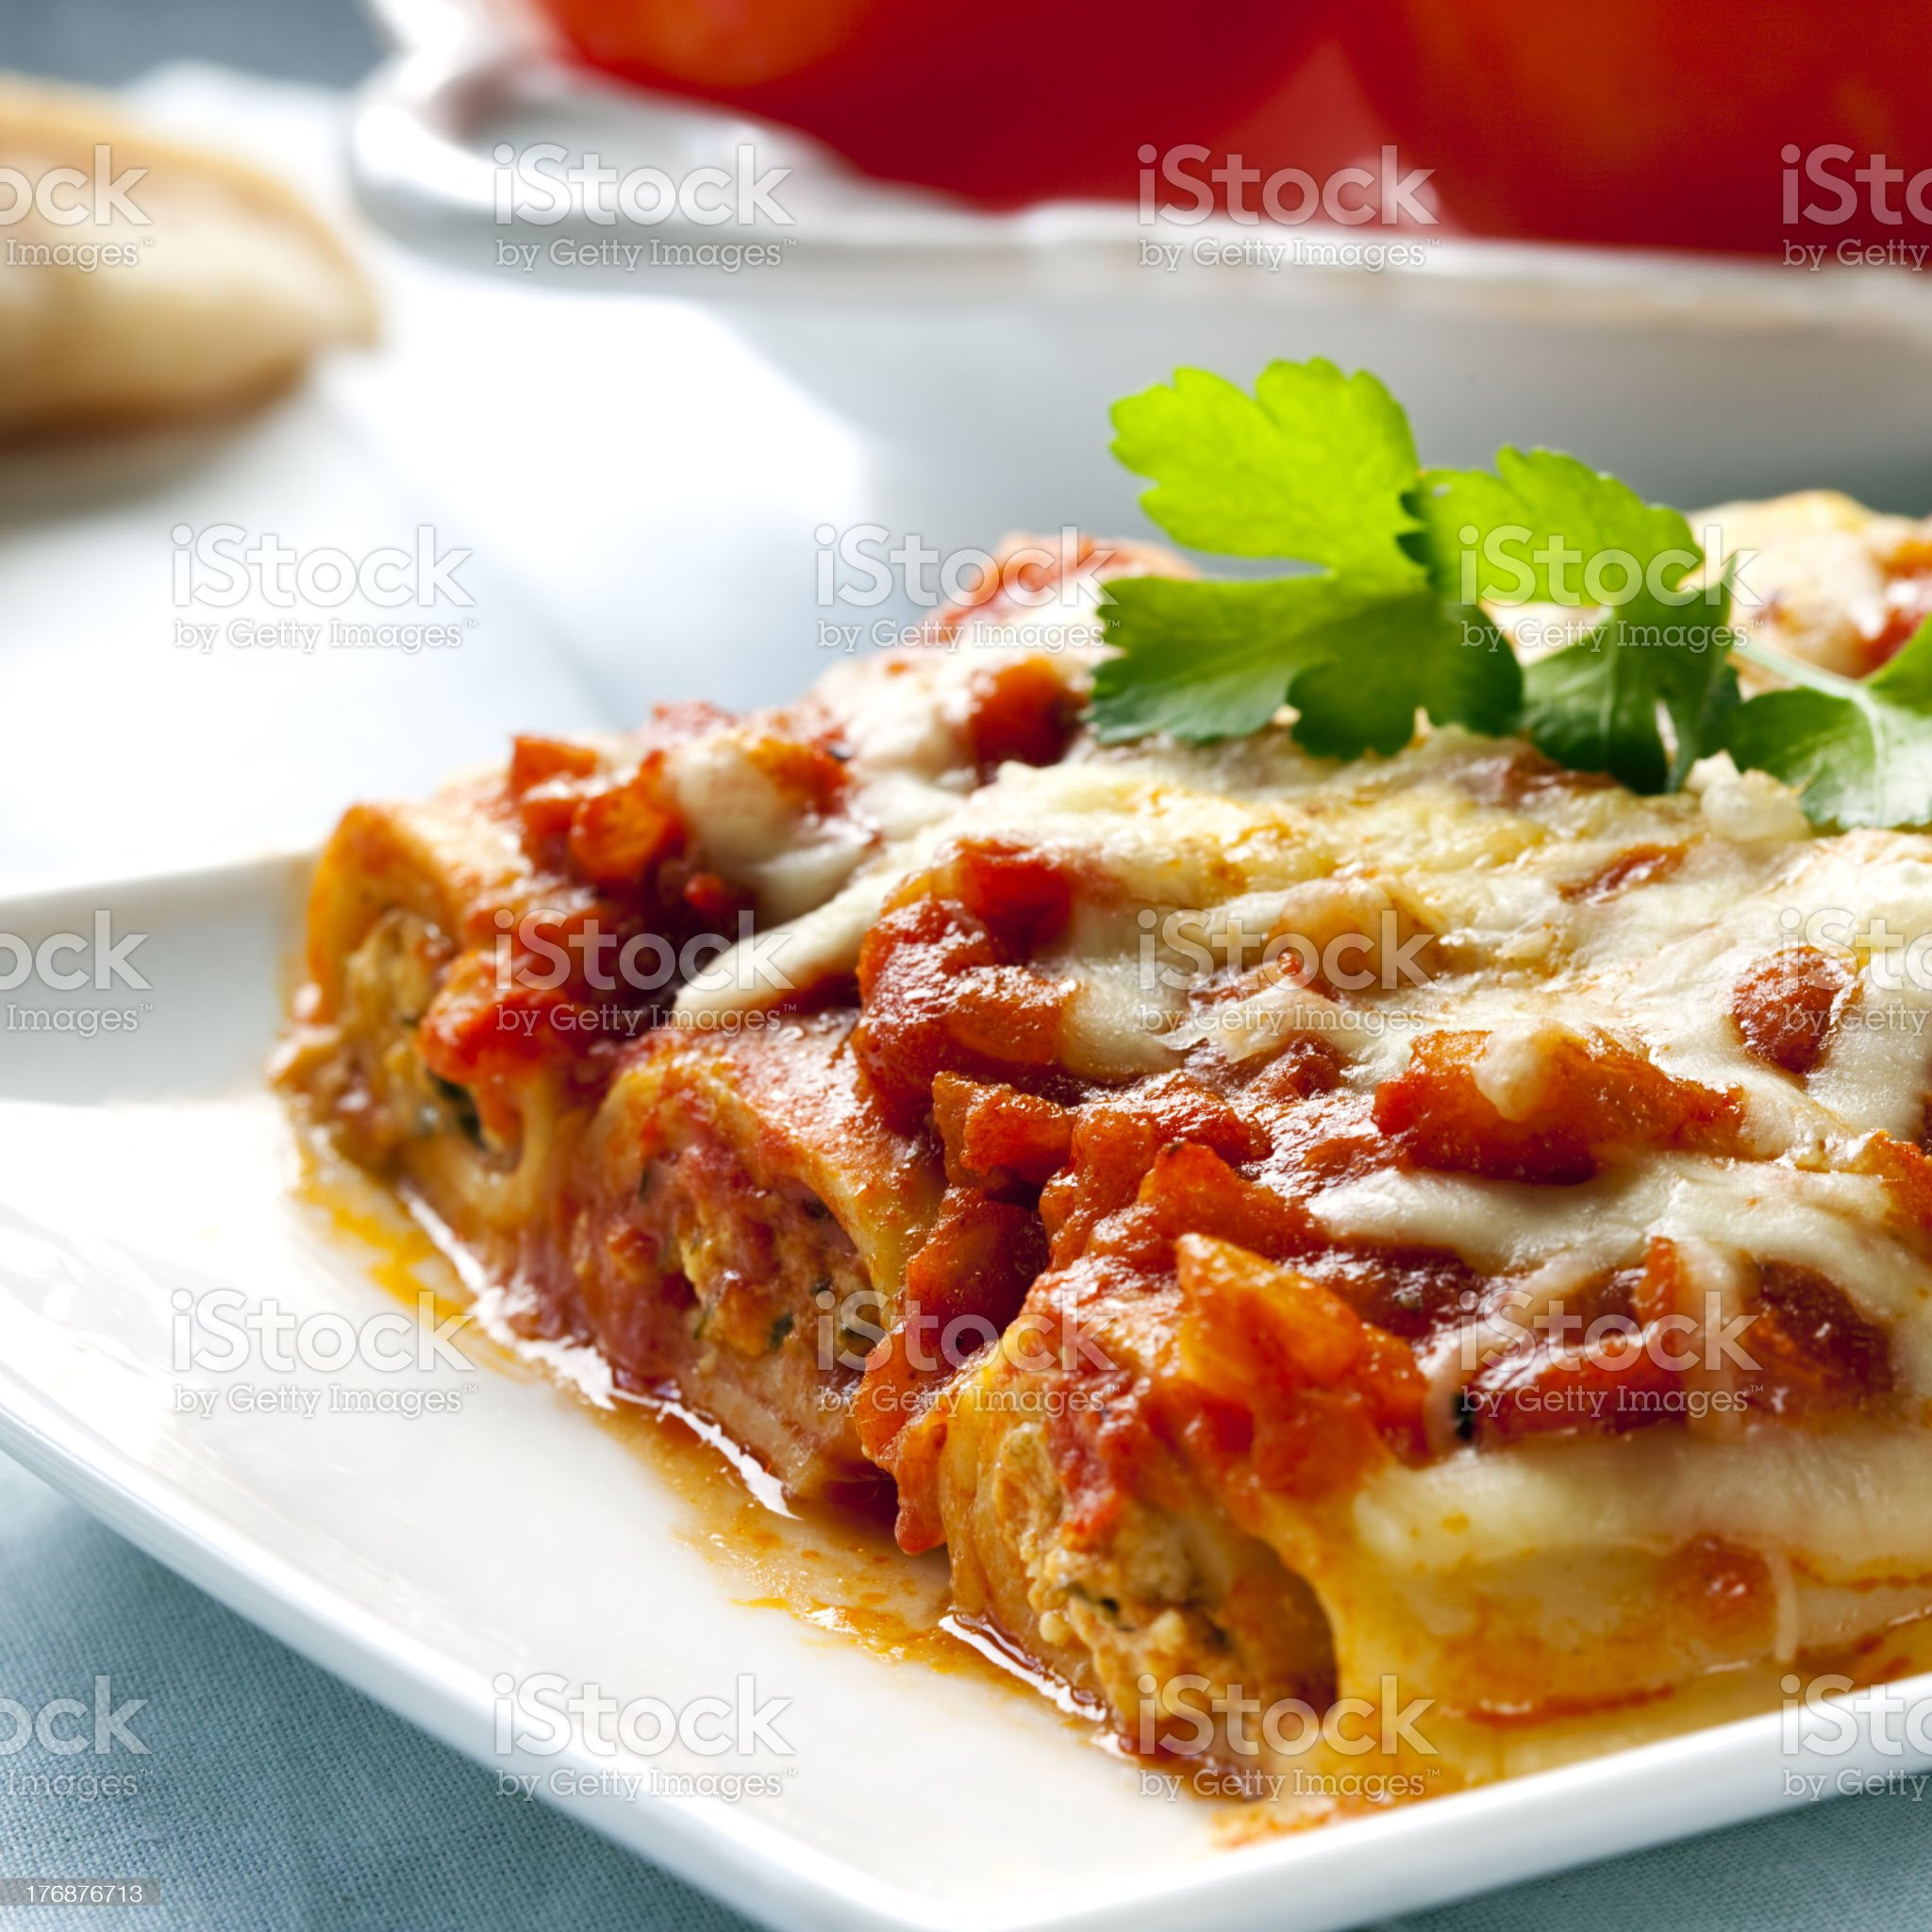 Cannelloni on a white plate on a table royalty-free stock photo